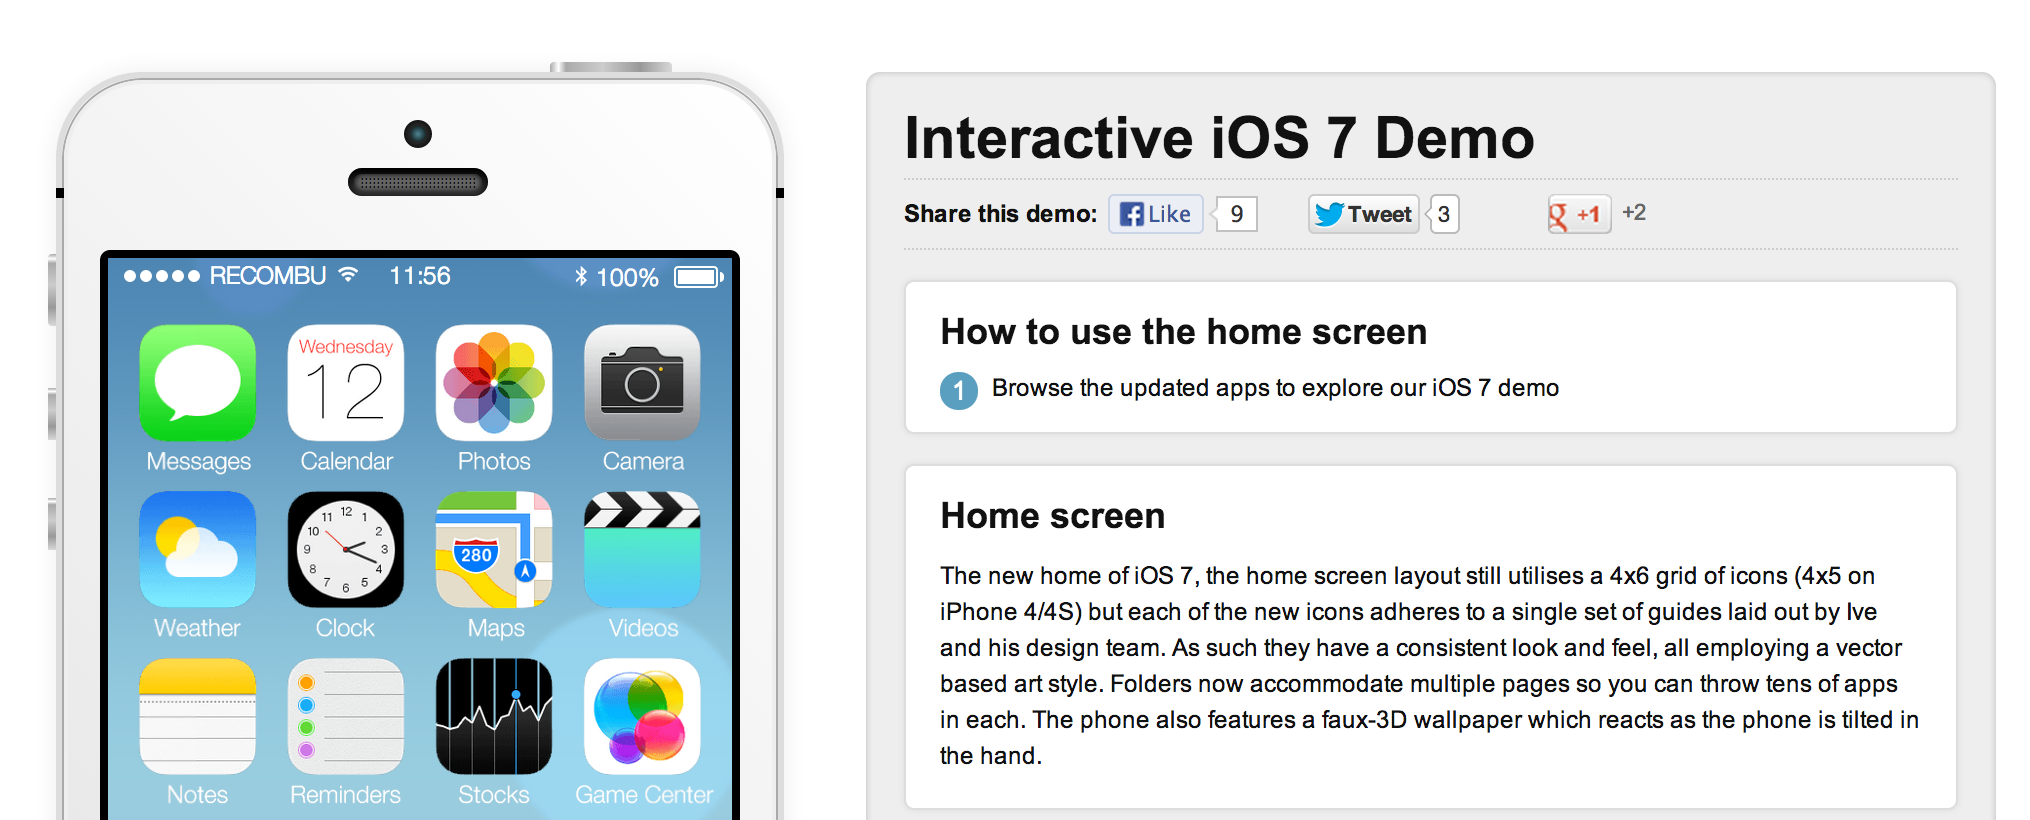 Interactive iOS 7 Demo